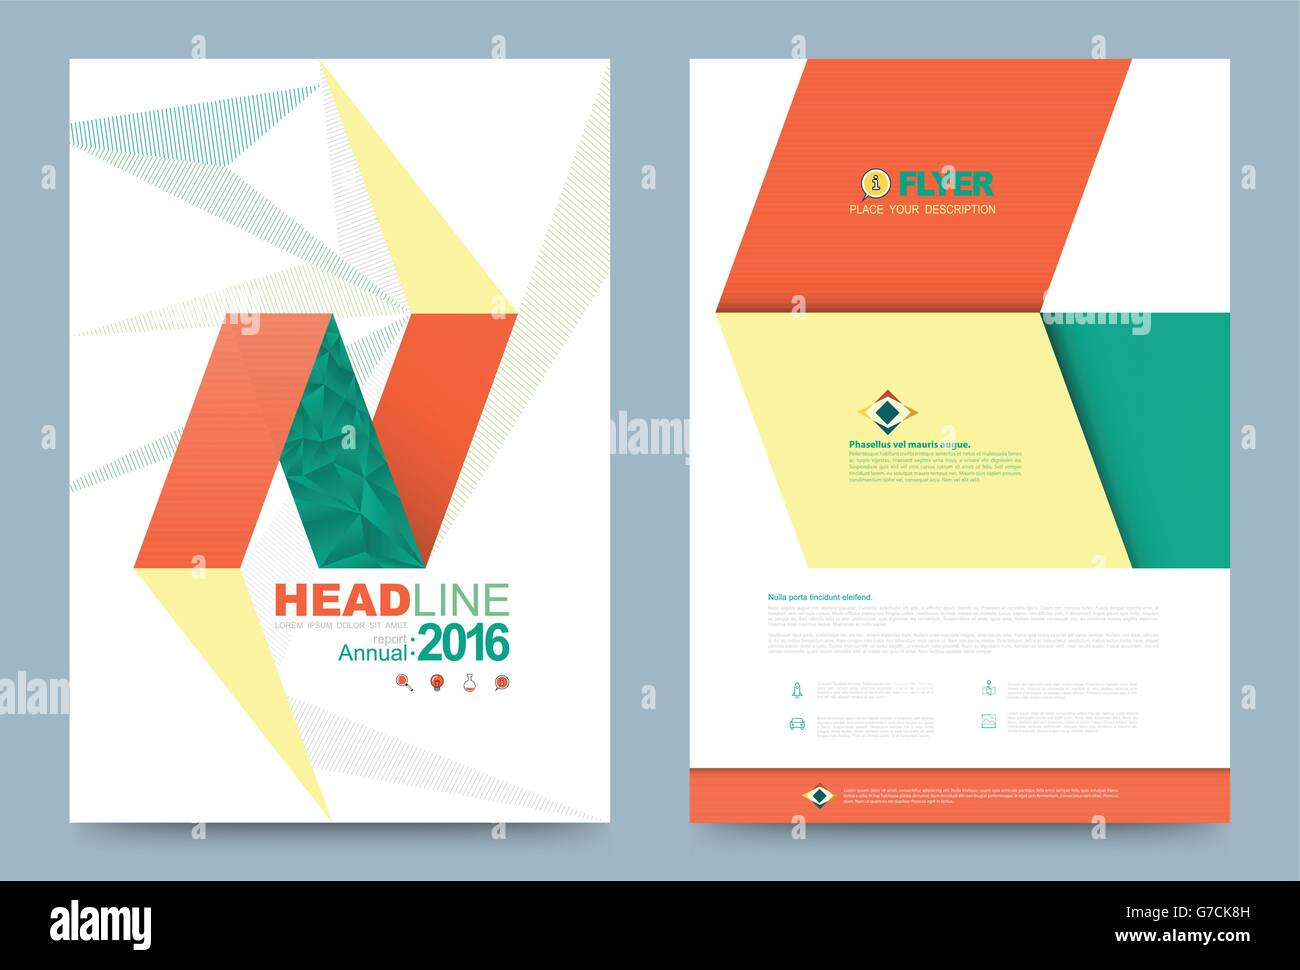 Cover Template Design For Business Annual Report Flyer Brochure Leaflet  Presentation And Printing Press. Vector Illustration. La  Annual Report Template Design